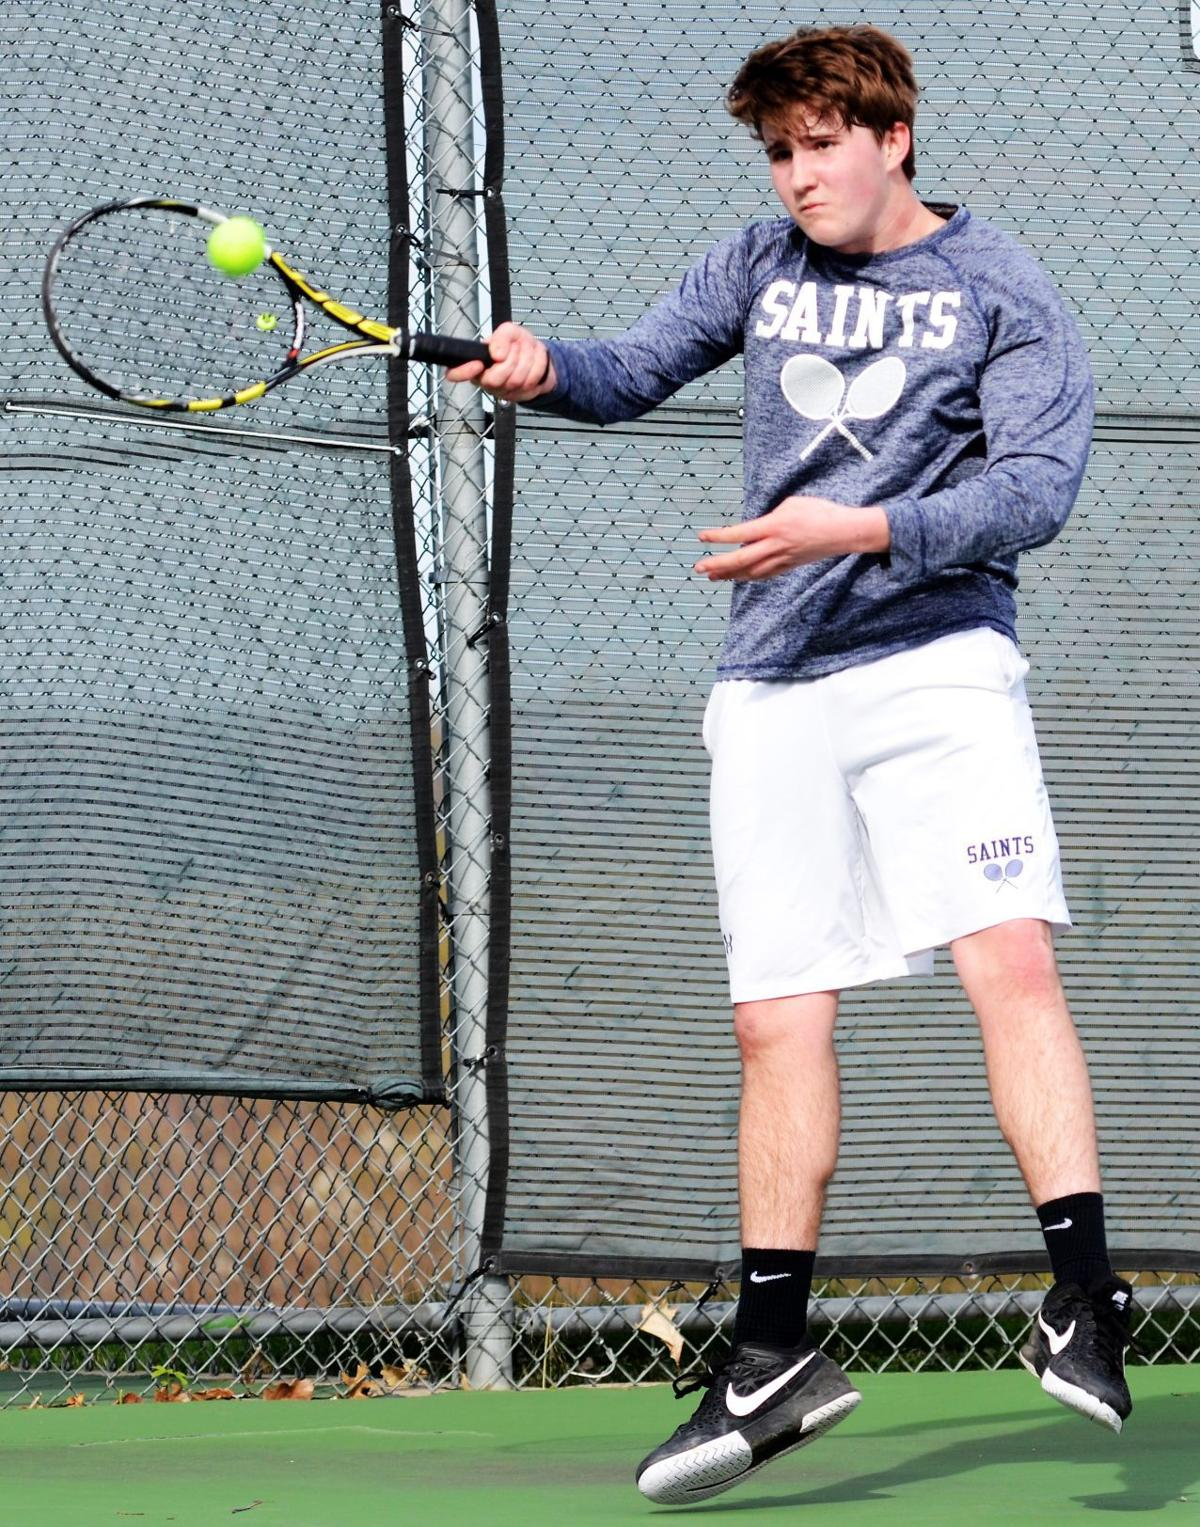 herald senior singles A senior who started the season at no 2 singles but elevated his stats and game heads our list of 2018 herald news boys' tennis all scholastics, while.